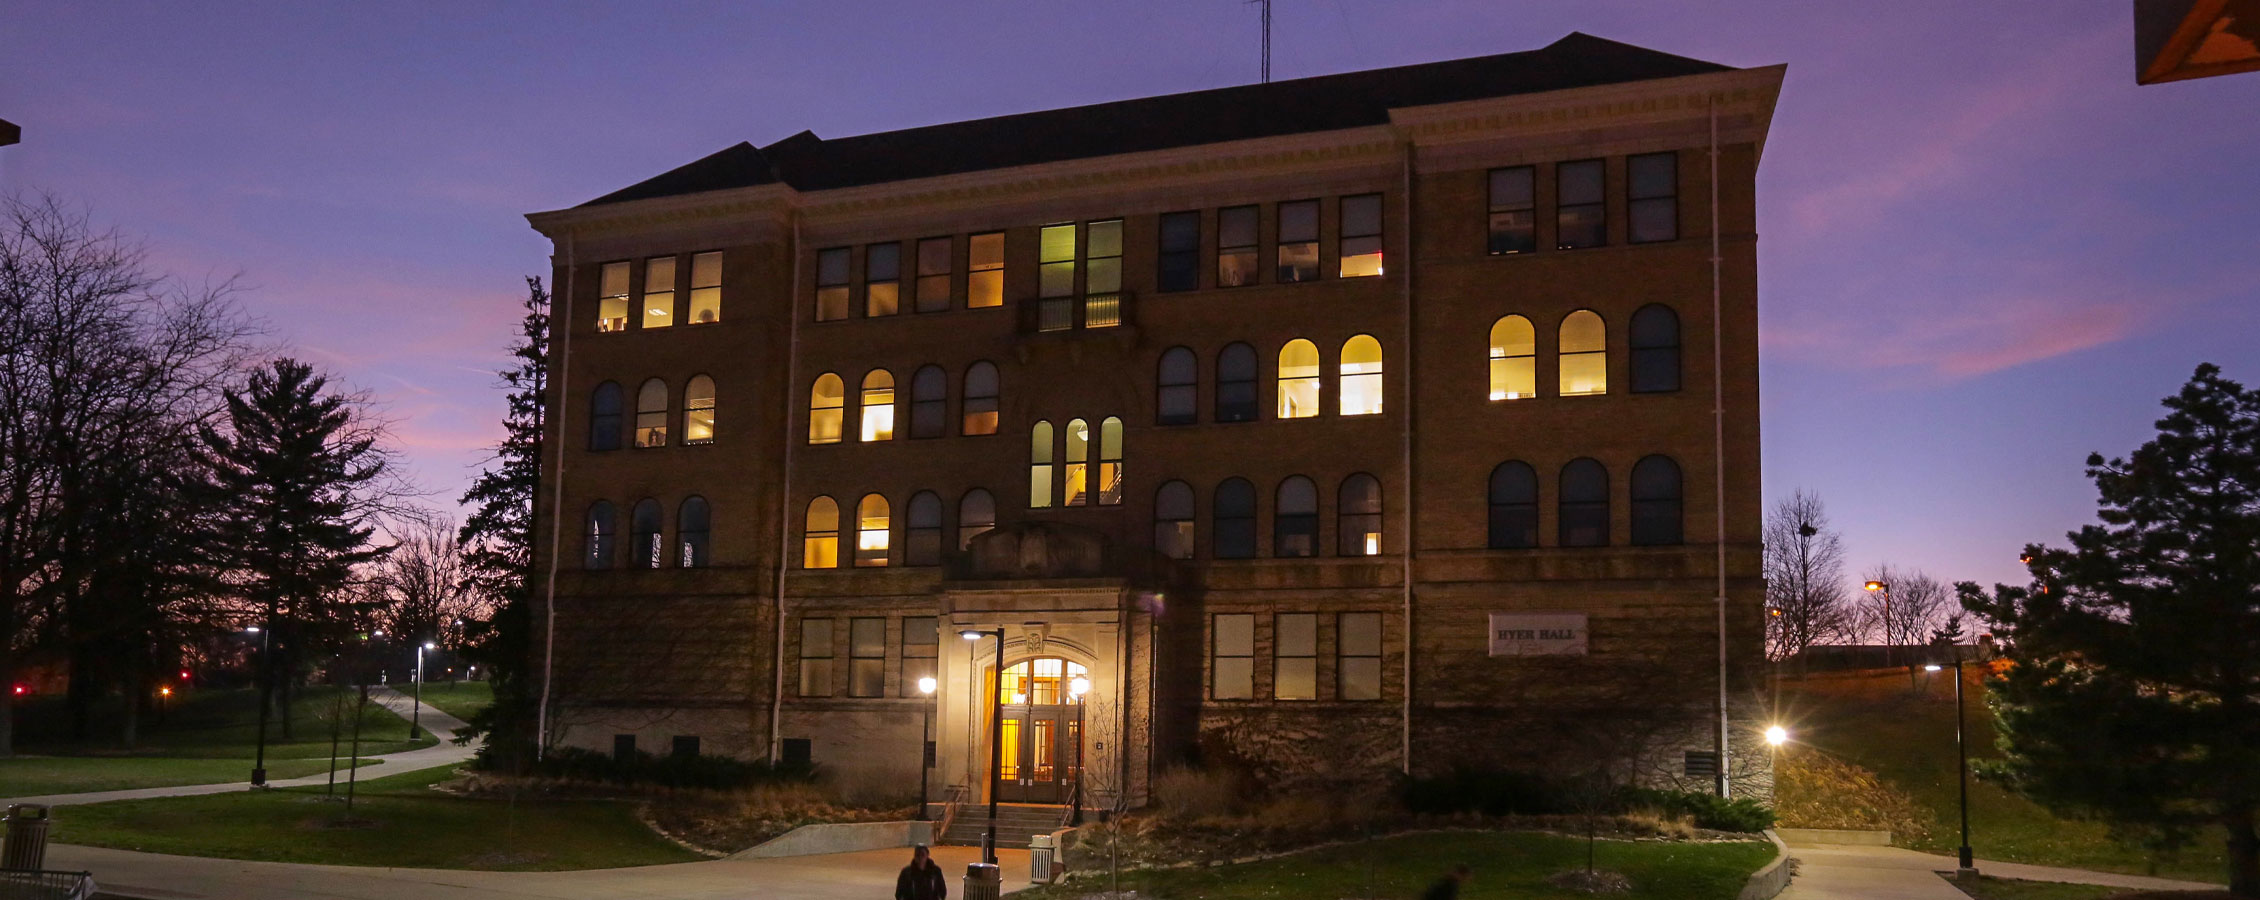 A night view of Hyer Hall.